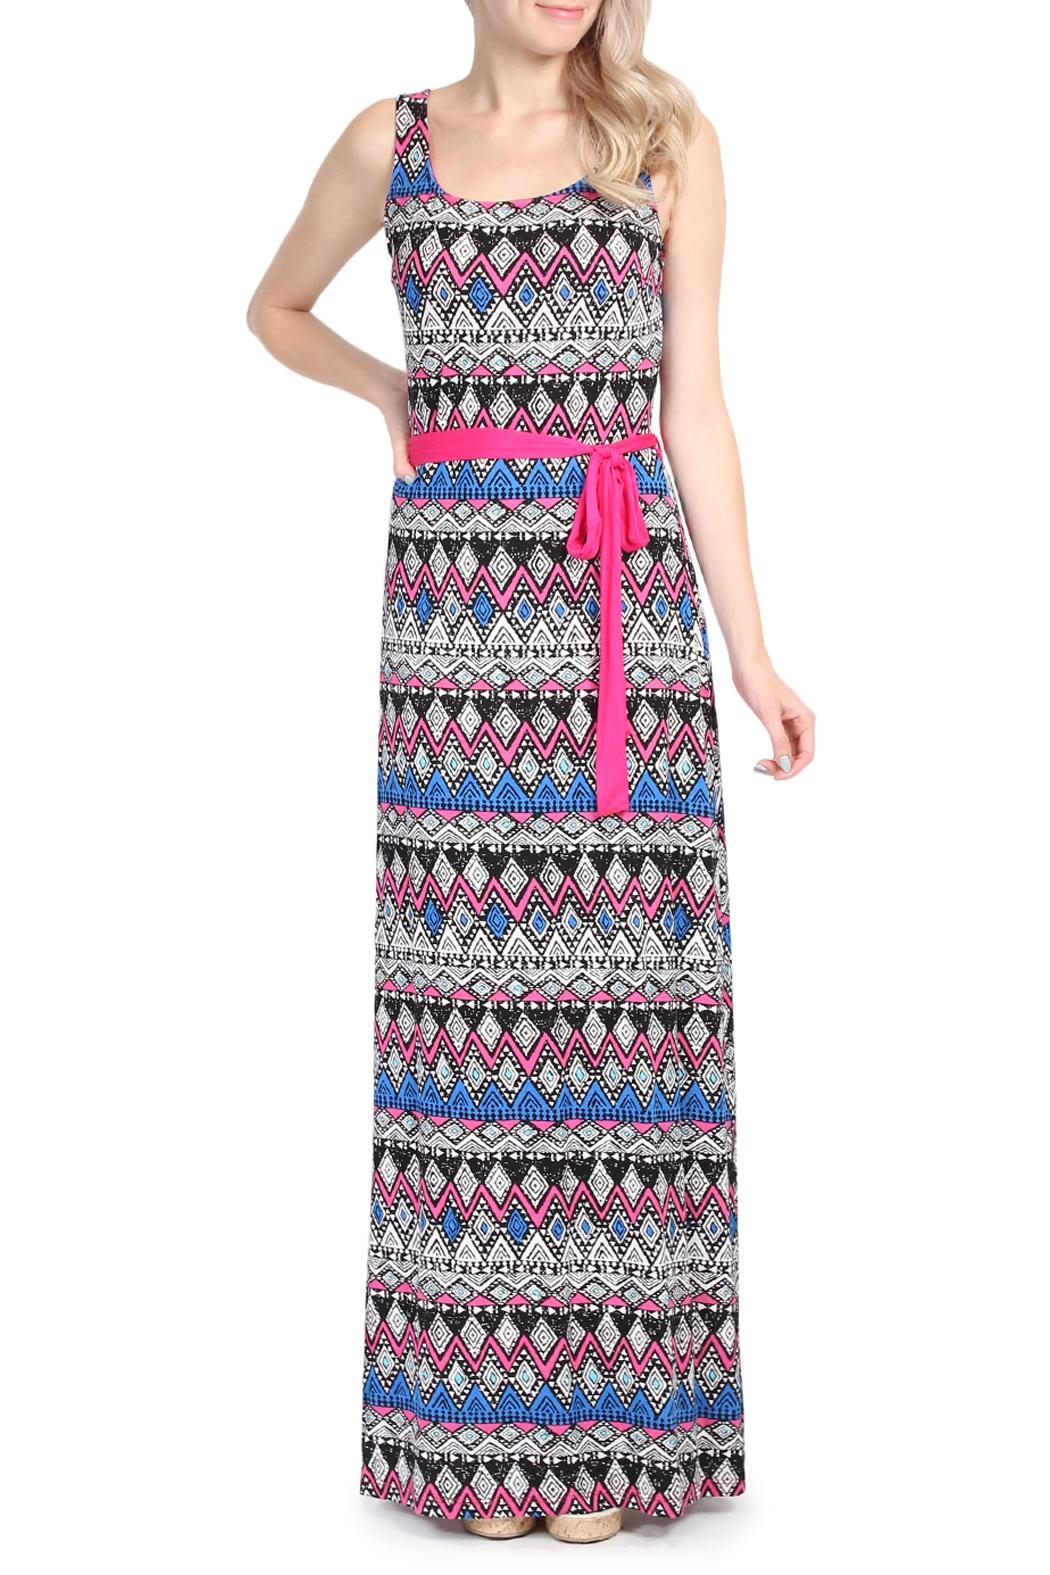 Riah Fashion Tribal Print Maxi Dress - Front Cropped Image